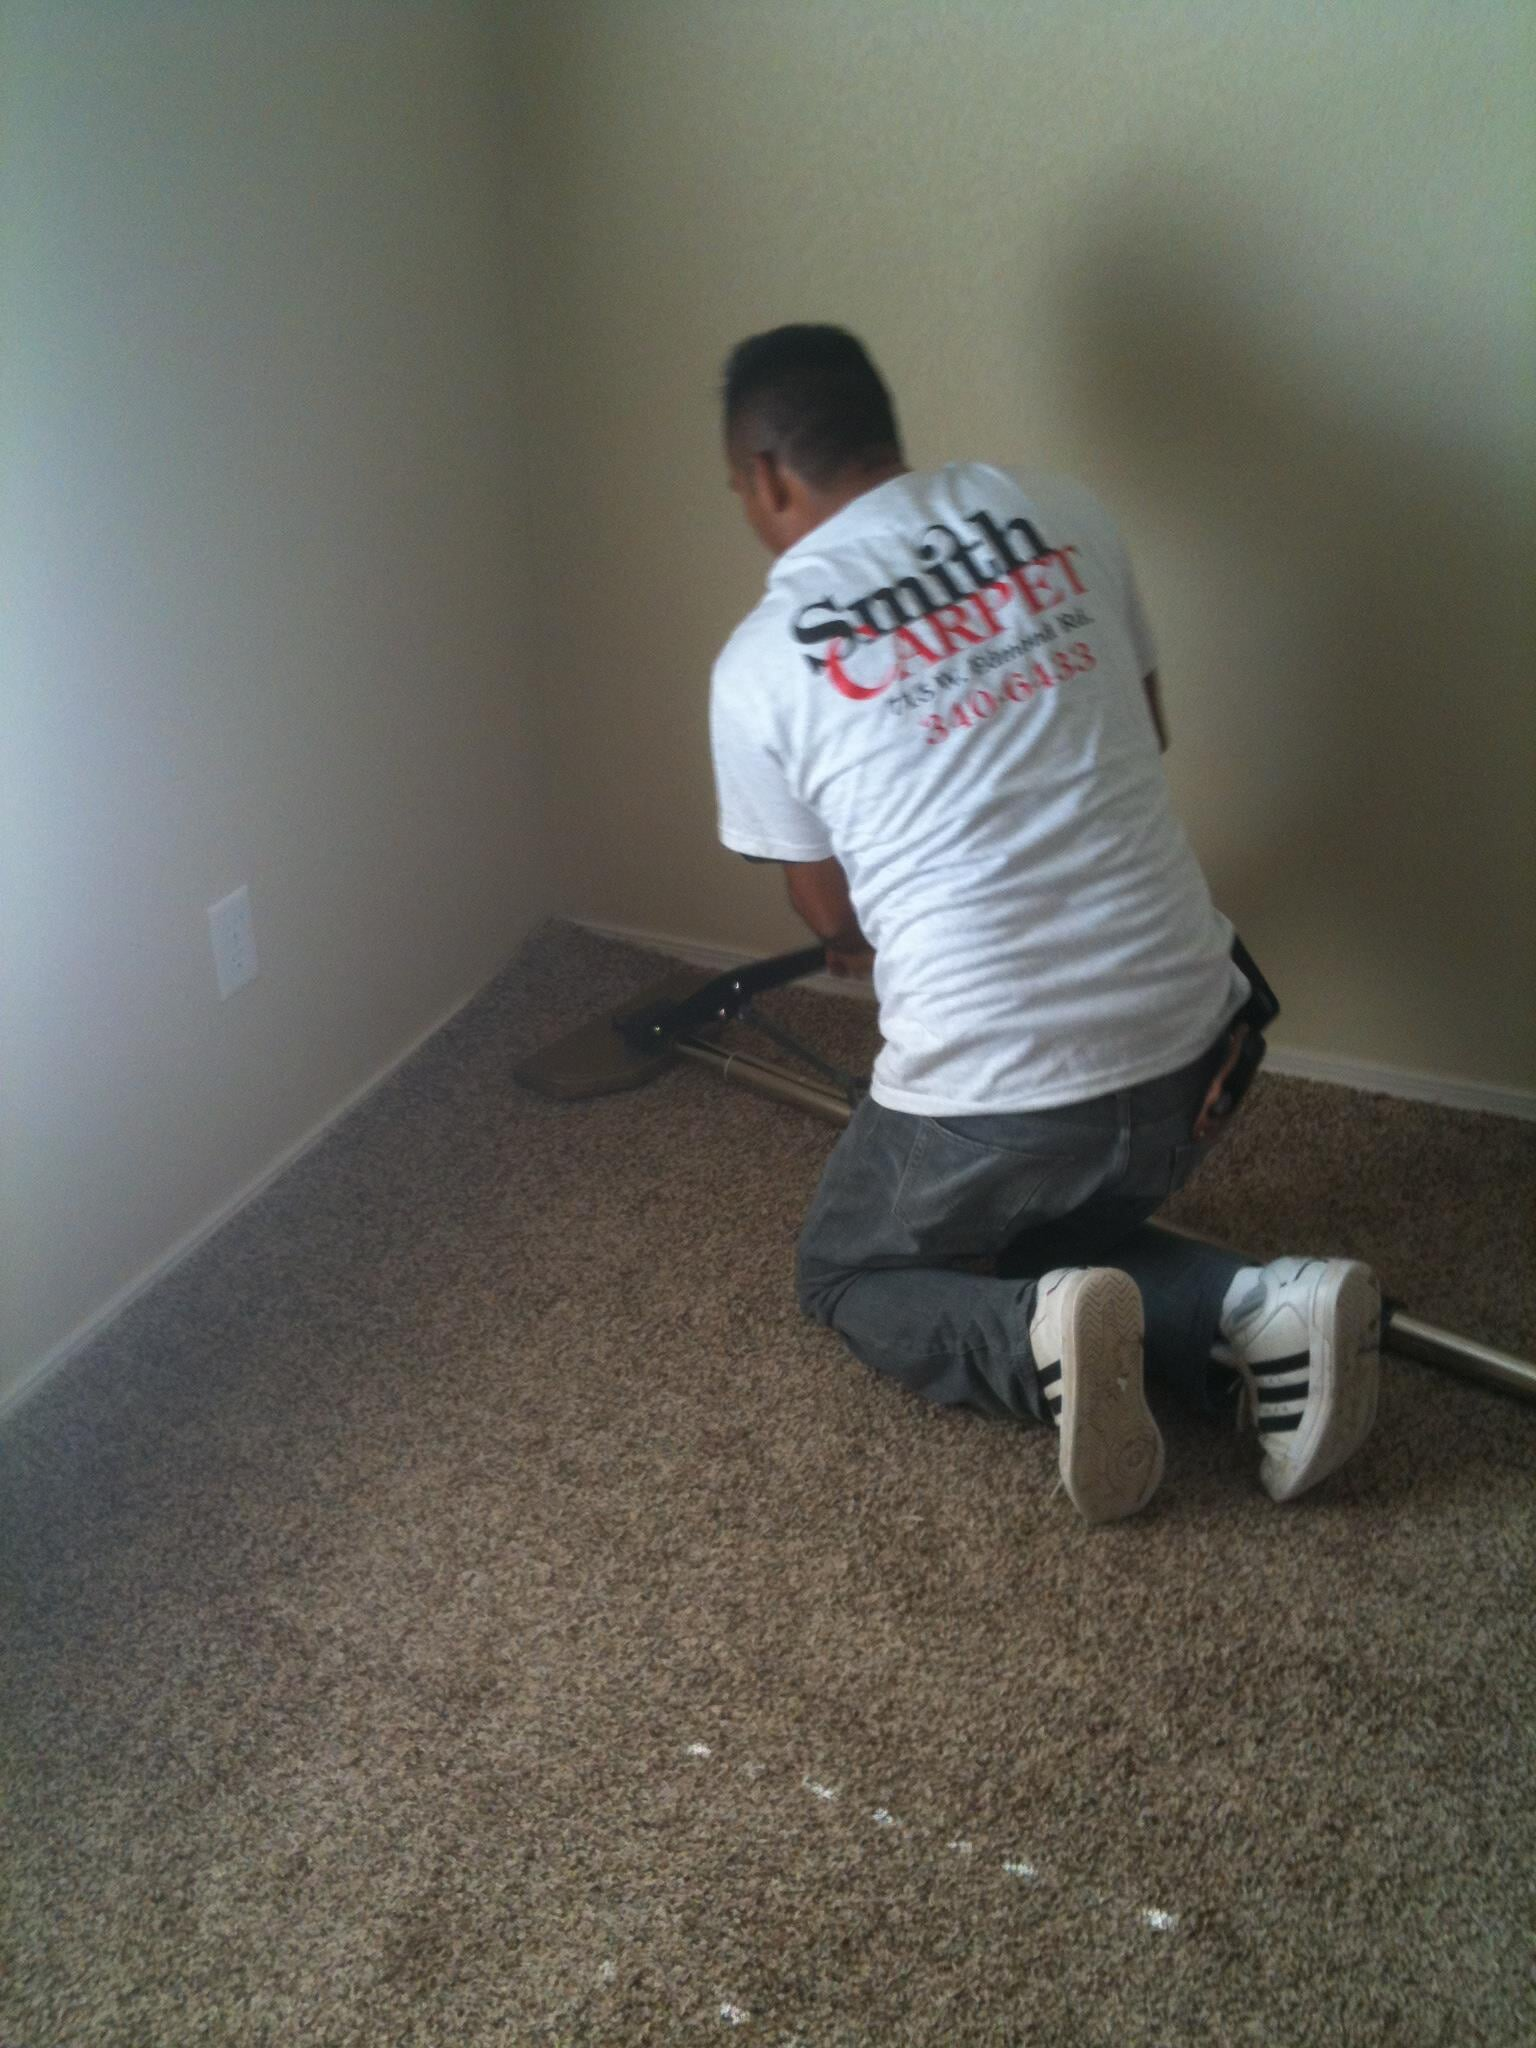 Carpet installation from Smith Carpet & Tile Center in Edmond, OK